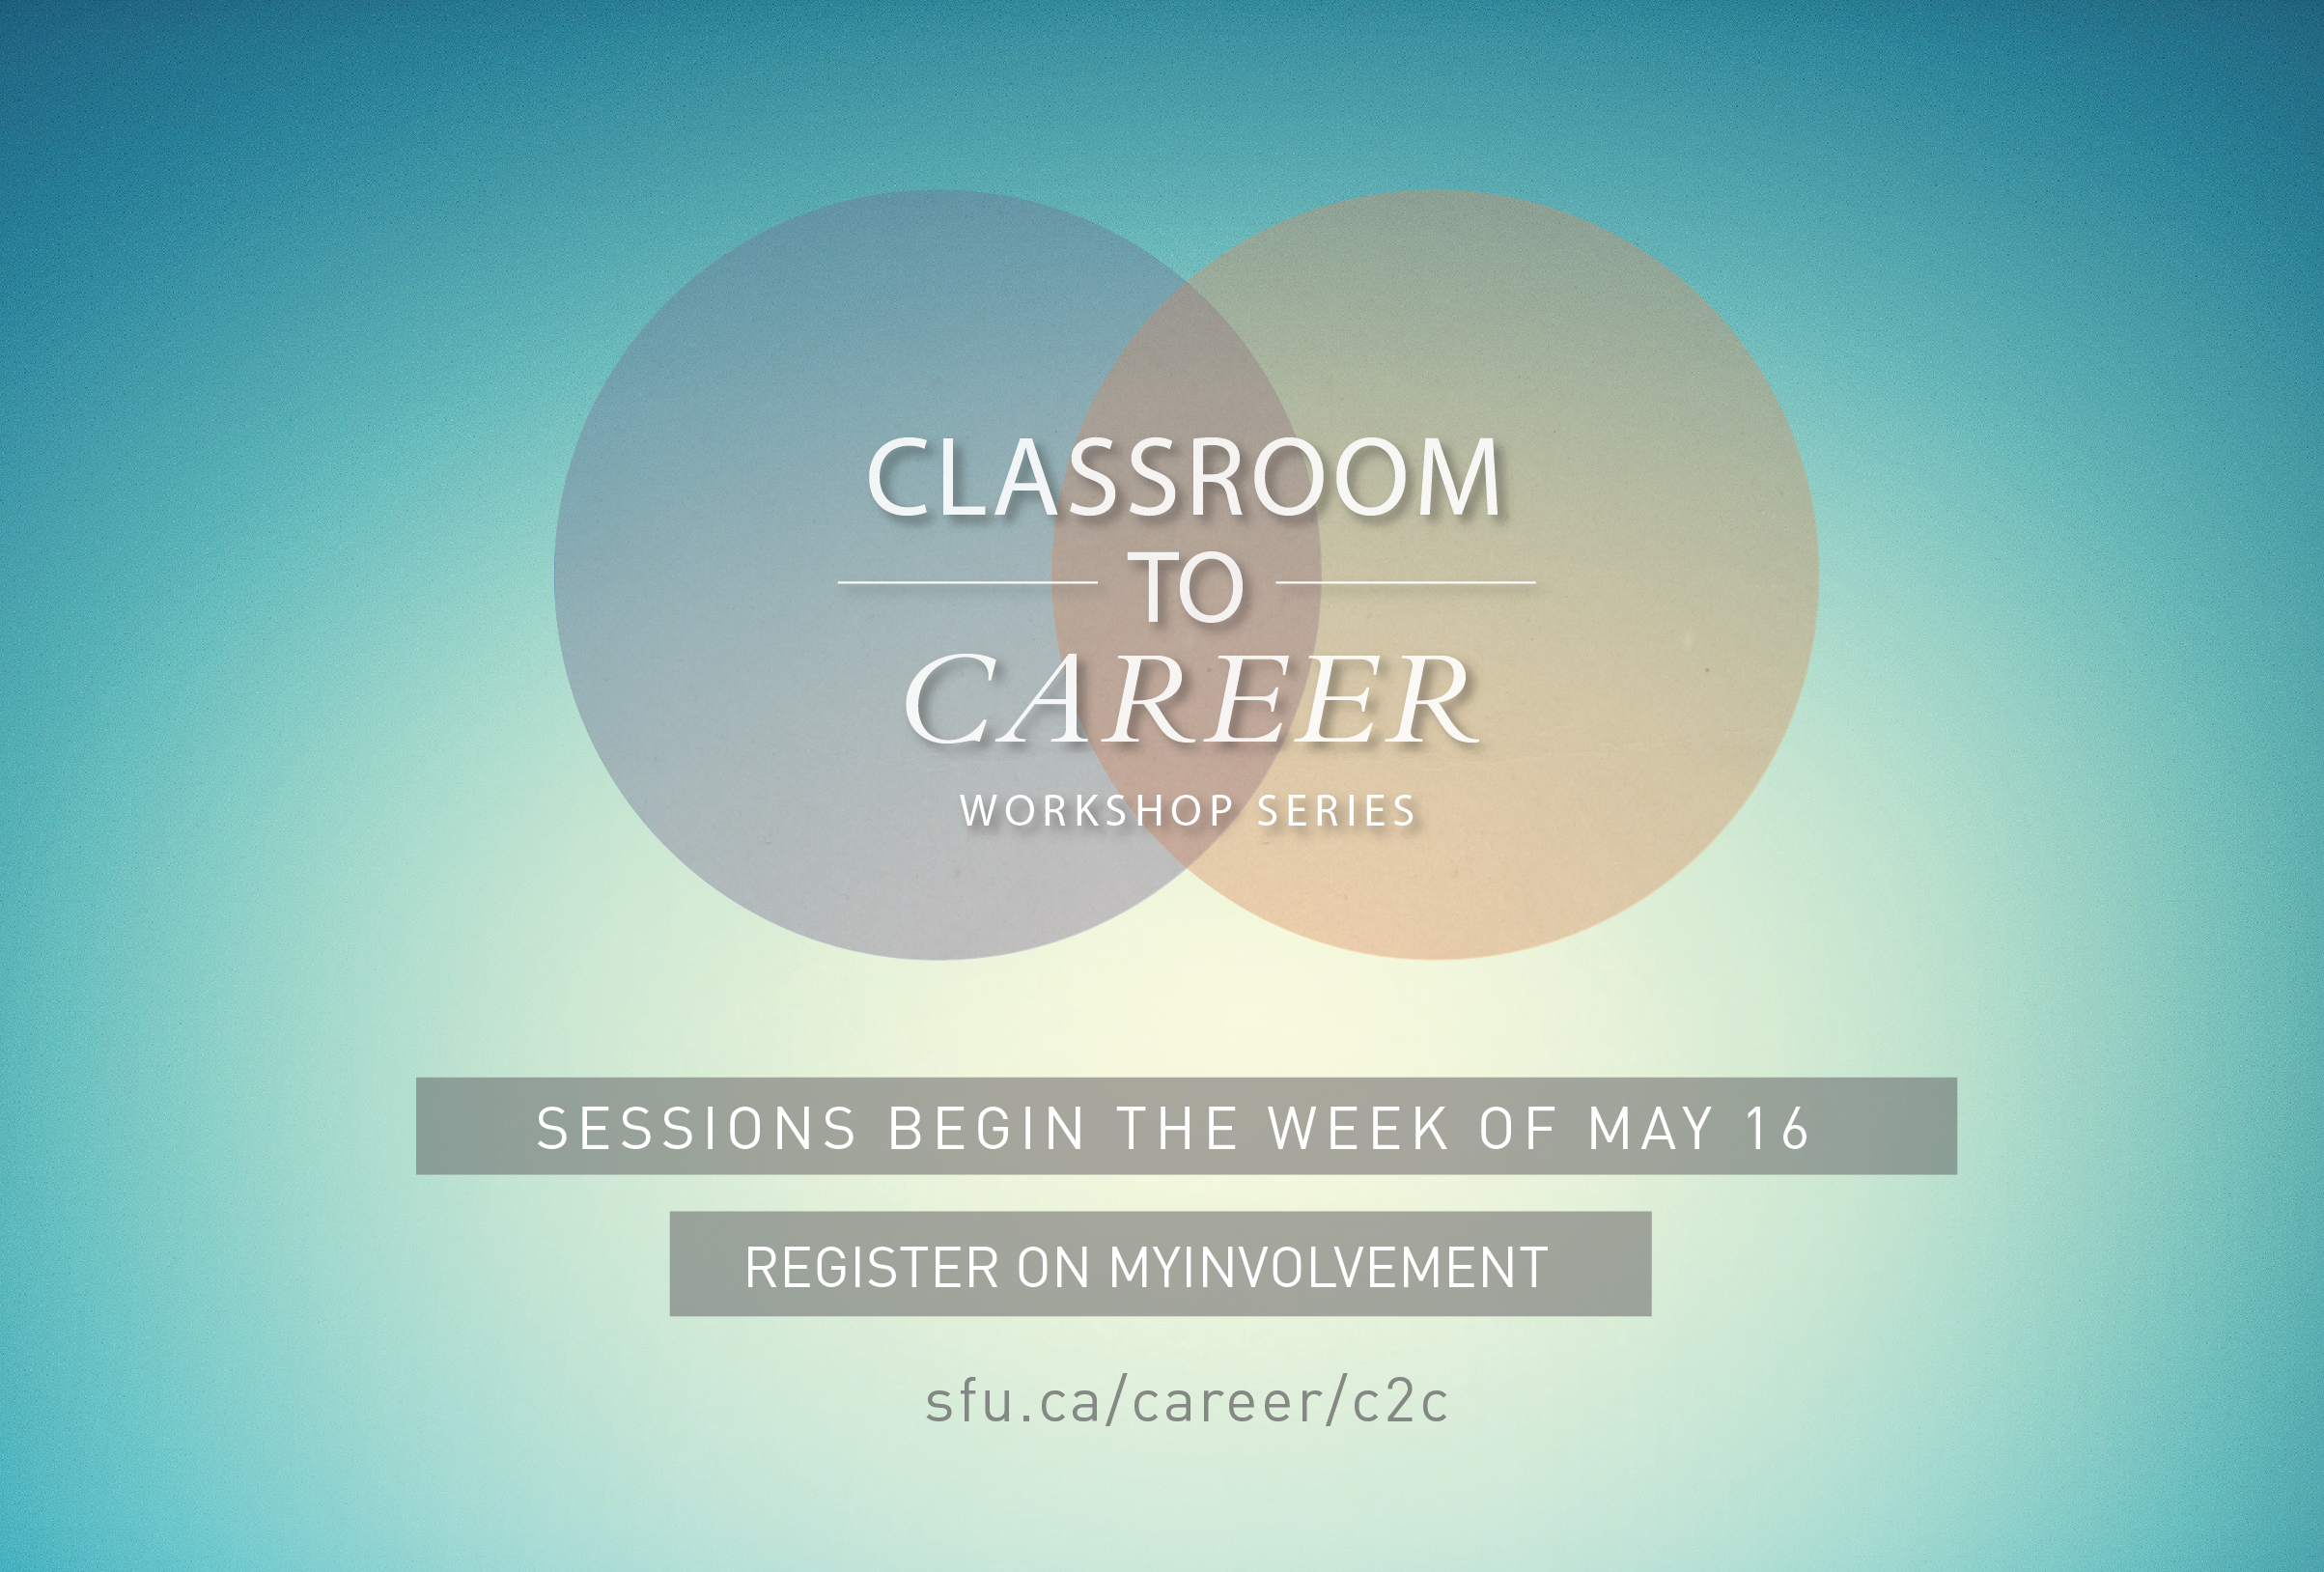 career services simon fraser university classroom to career